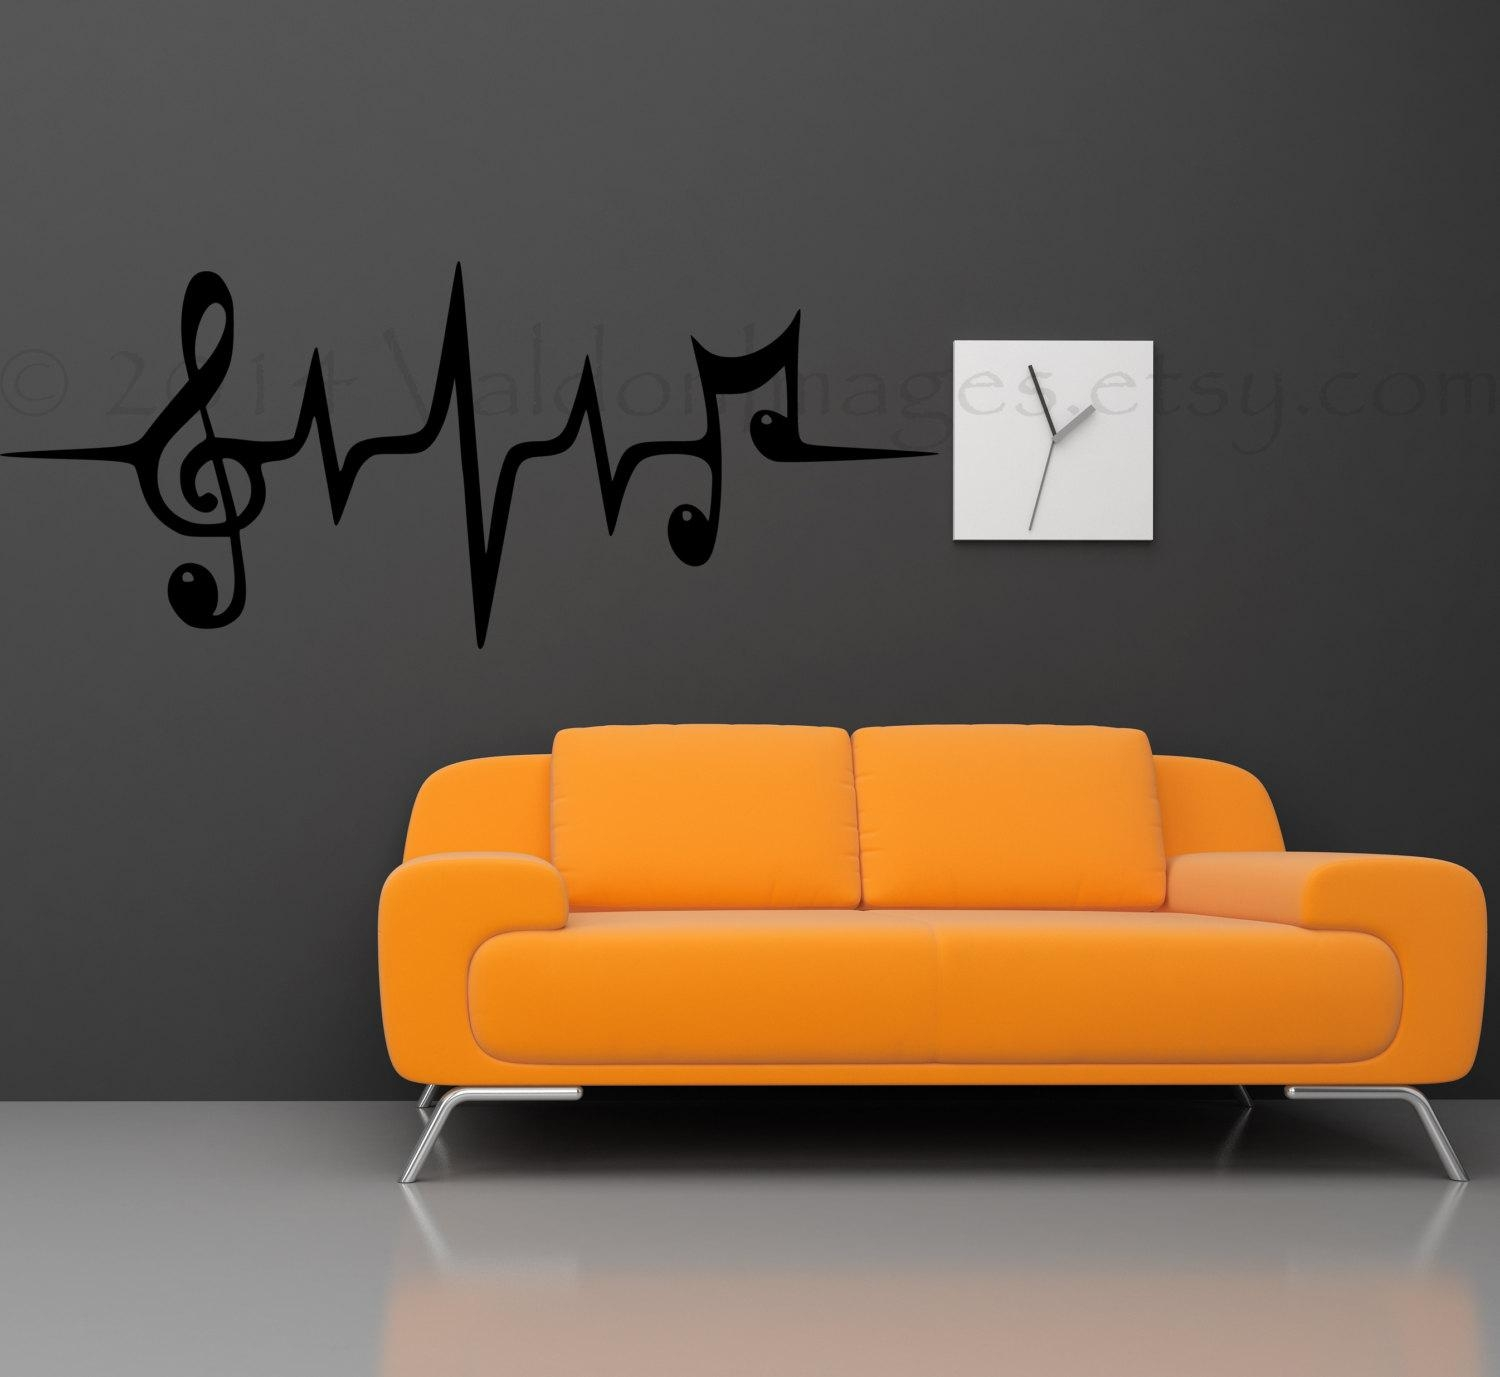 Music Note Wall Decal Music Wall Decal Heartbeat Wall Intended For Music Note Art For Walls (View 3 of 20)